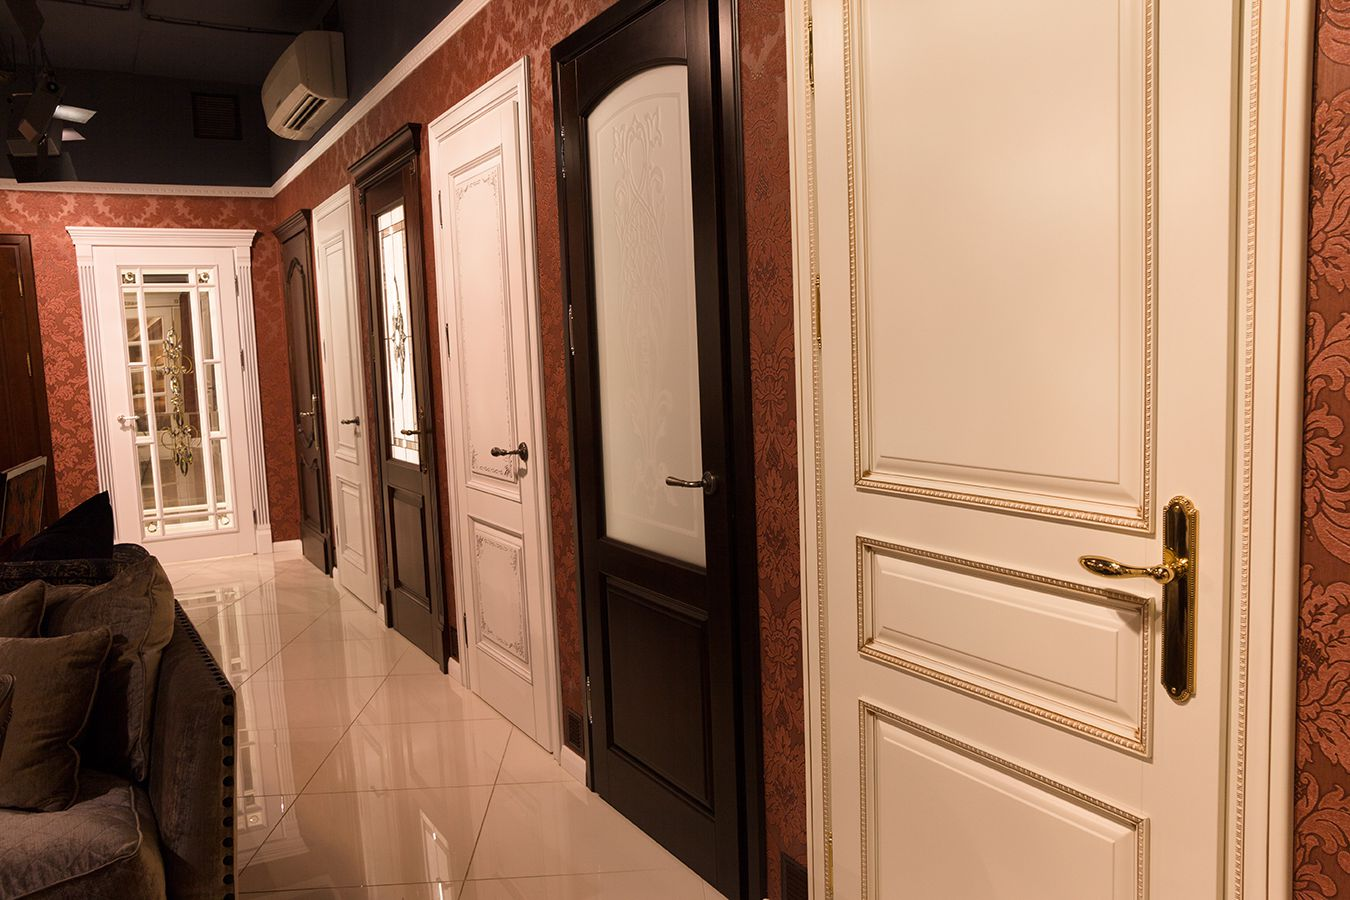 Luxury laminated doors in Baroque style